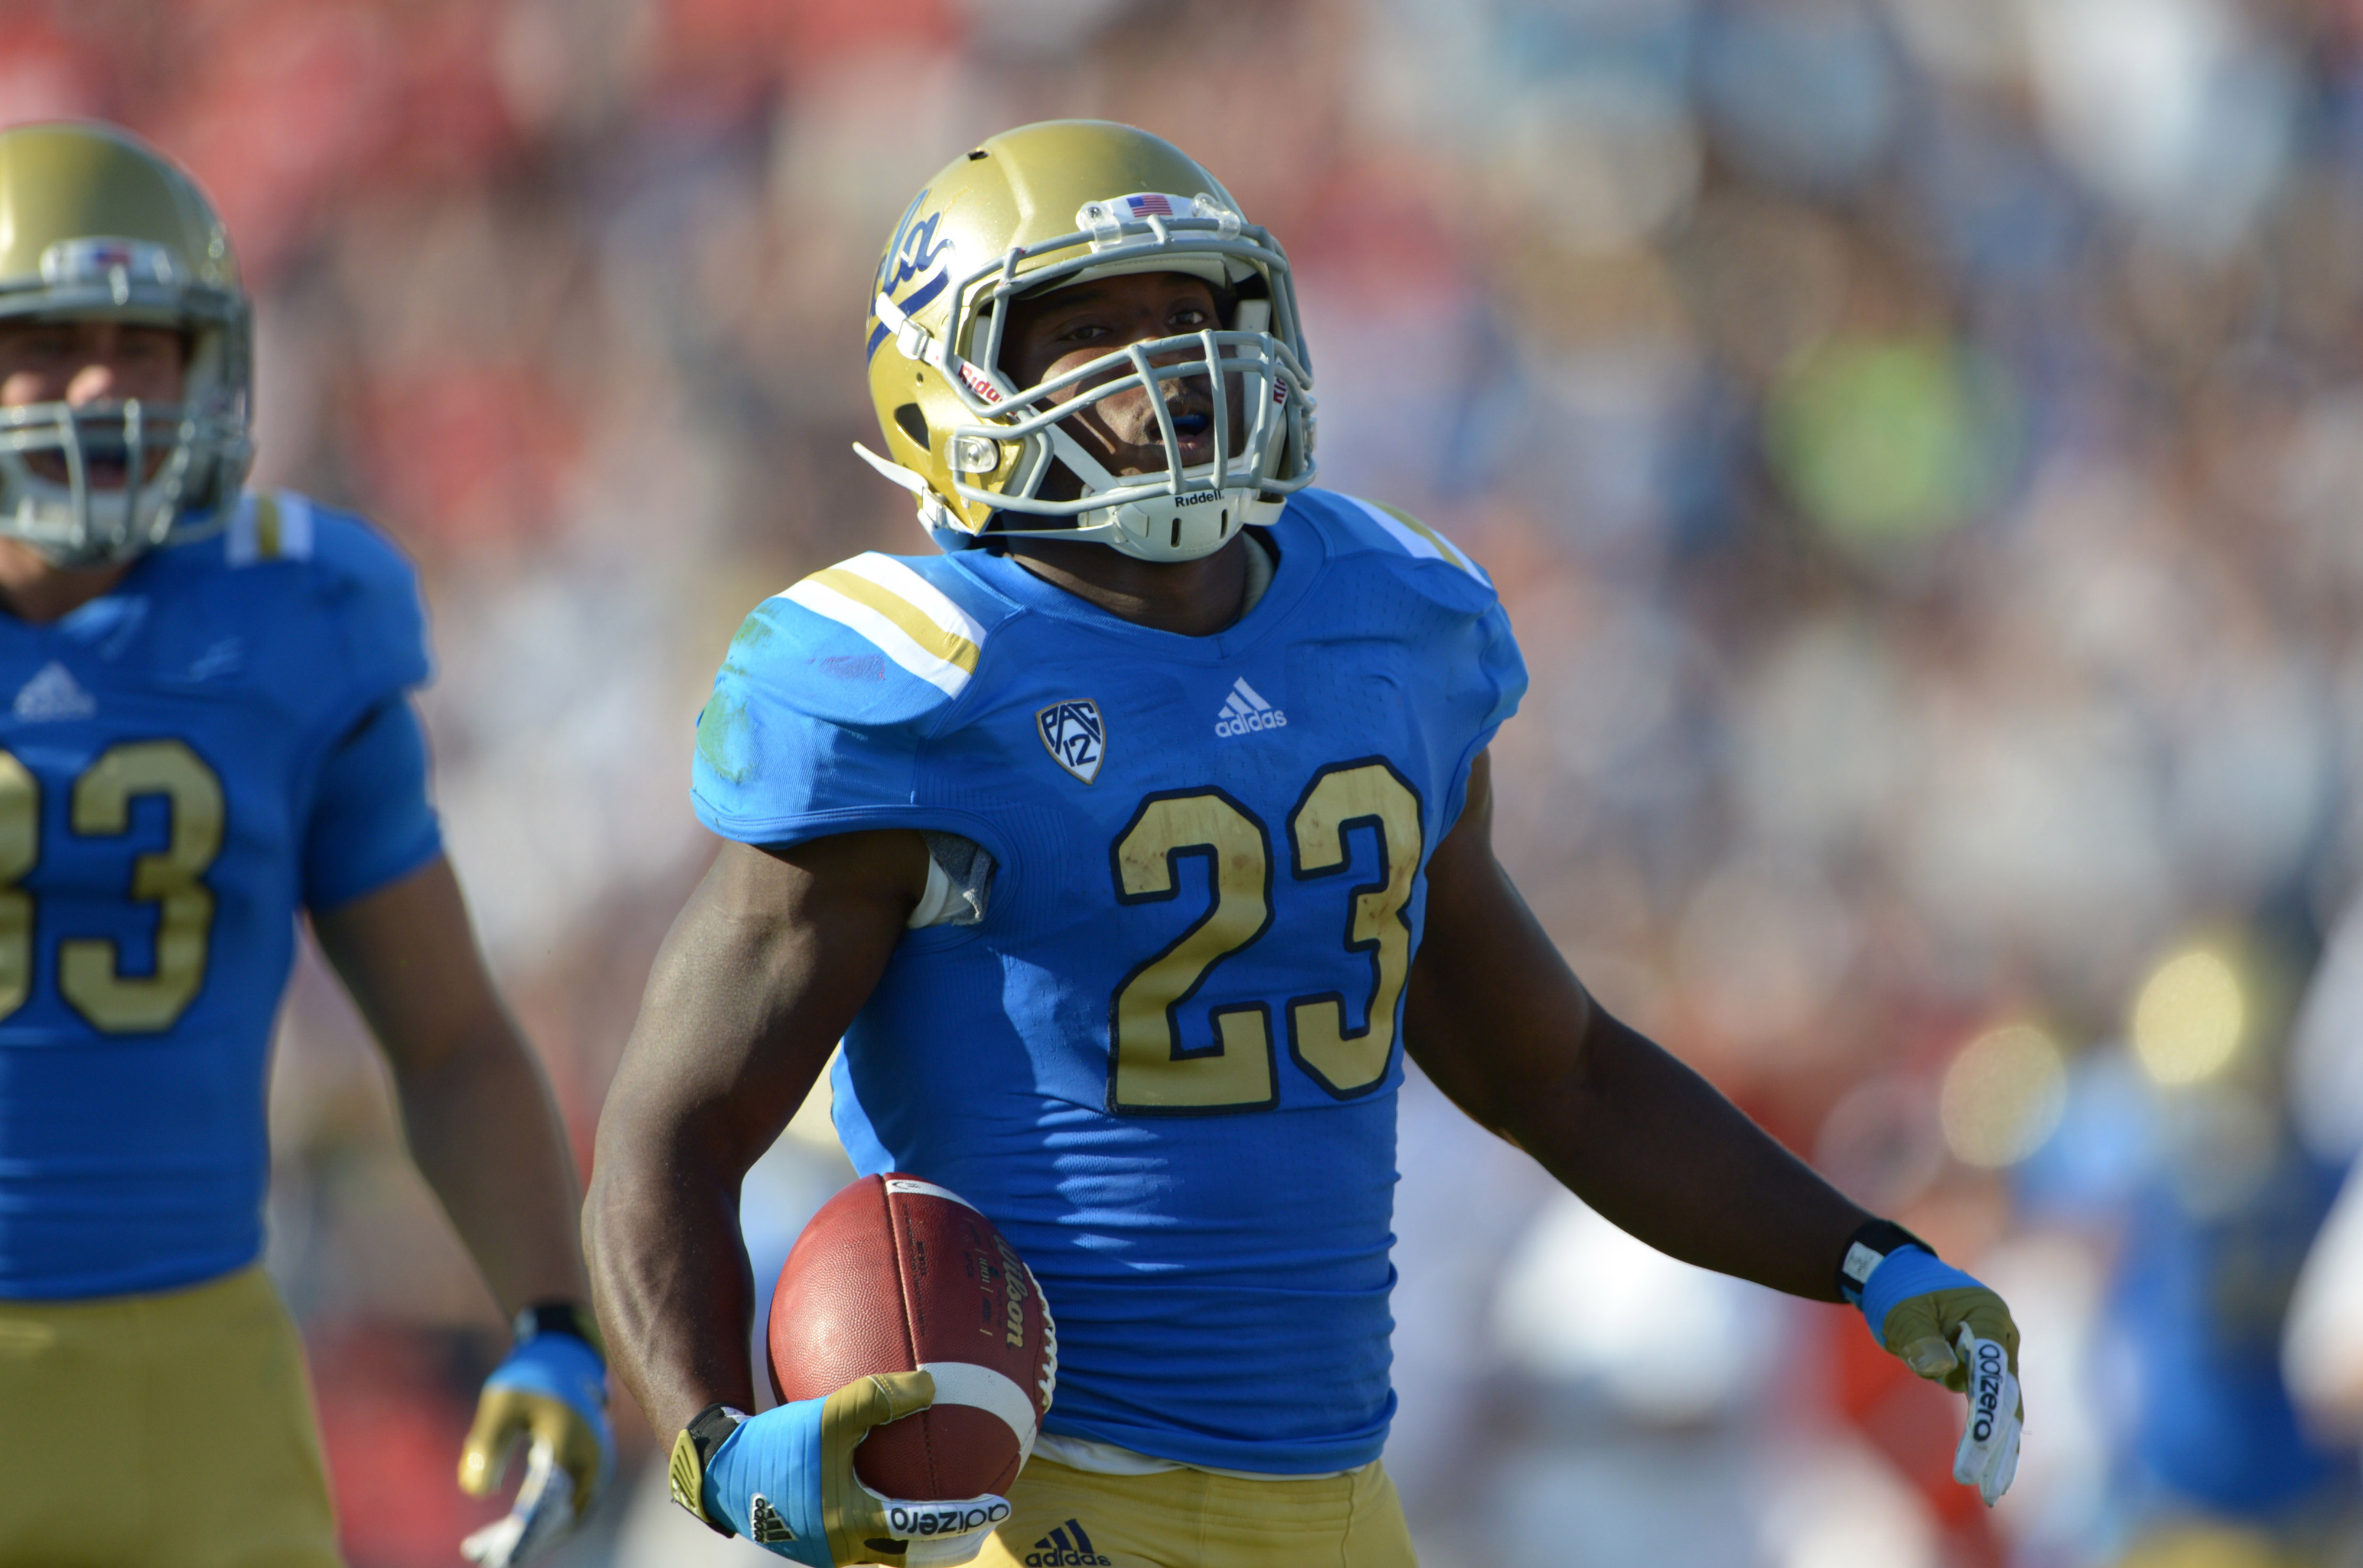 Sep 8, 2012; Pasadena, CA, USA; UCLA Bruins tailback Johnathan Franklin (23) celebrates during the game against the Nebraska Cornhuskers at the Rose Bowl. Mandatory Credit: Kirby Lee/Image of Sport-US PRESSWIRE